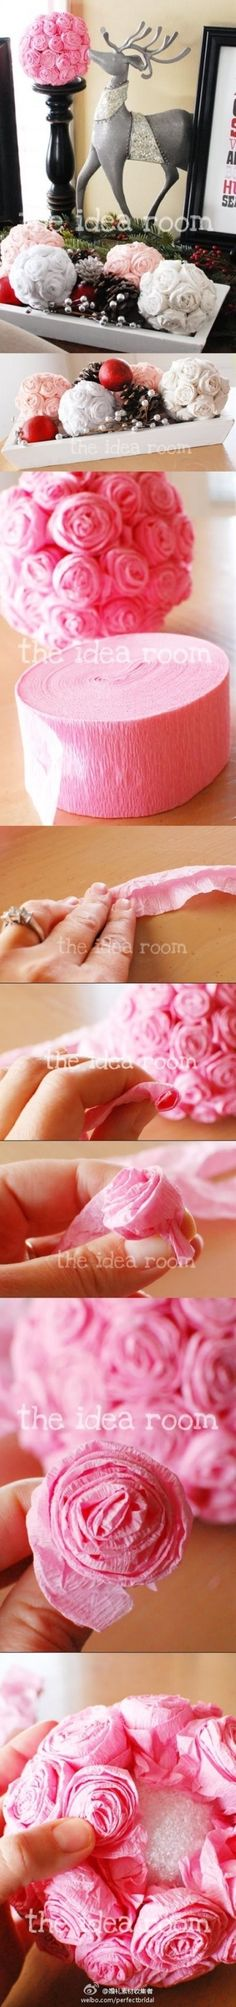 A fun way to spruce up a hospital, hospice, or any other room: crepe paper flowers